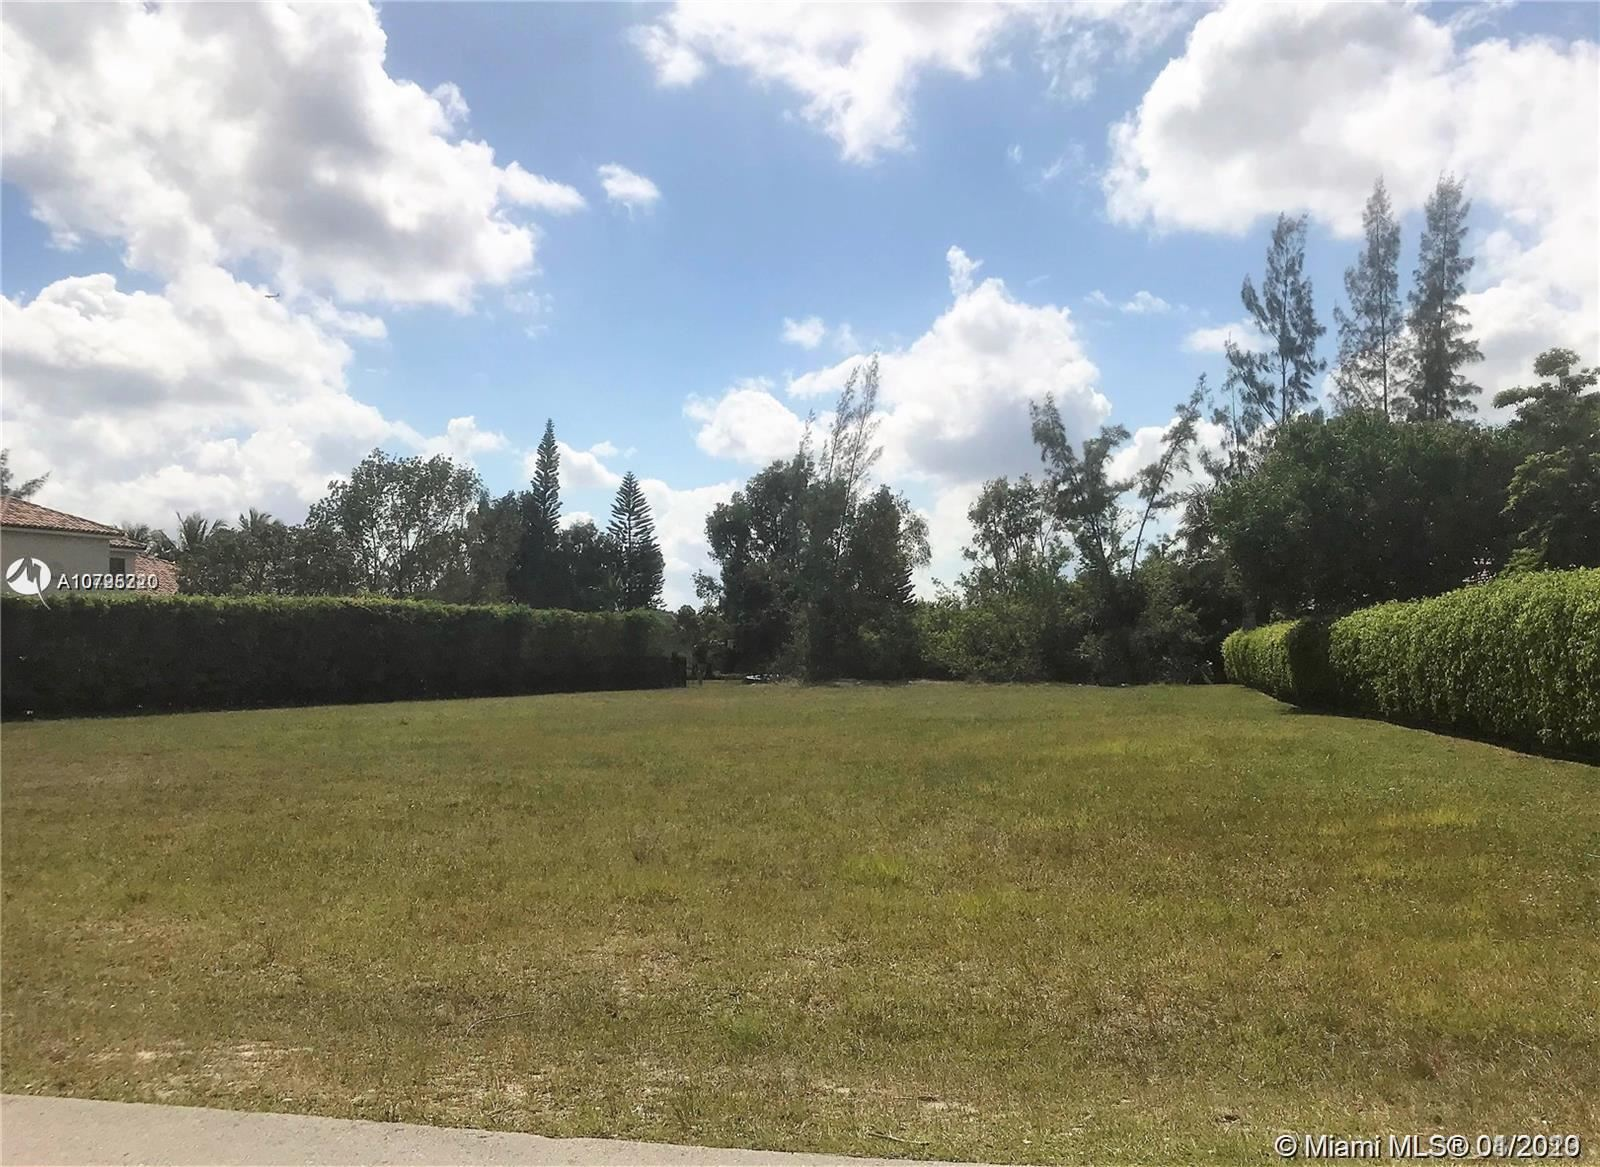 Photo 5 of Listing MLS a10795220 in 441 Ranch Rd Weston FL 33326